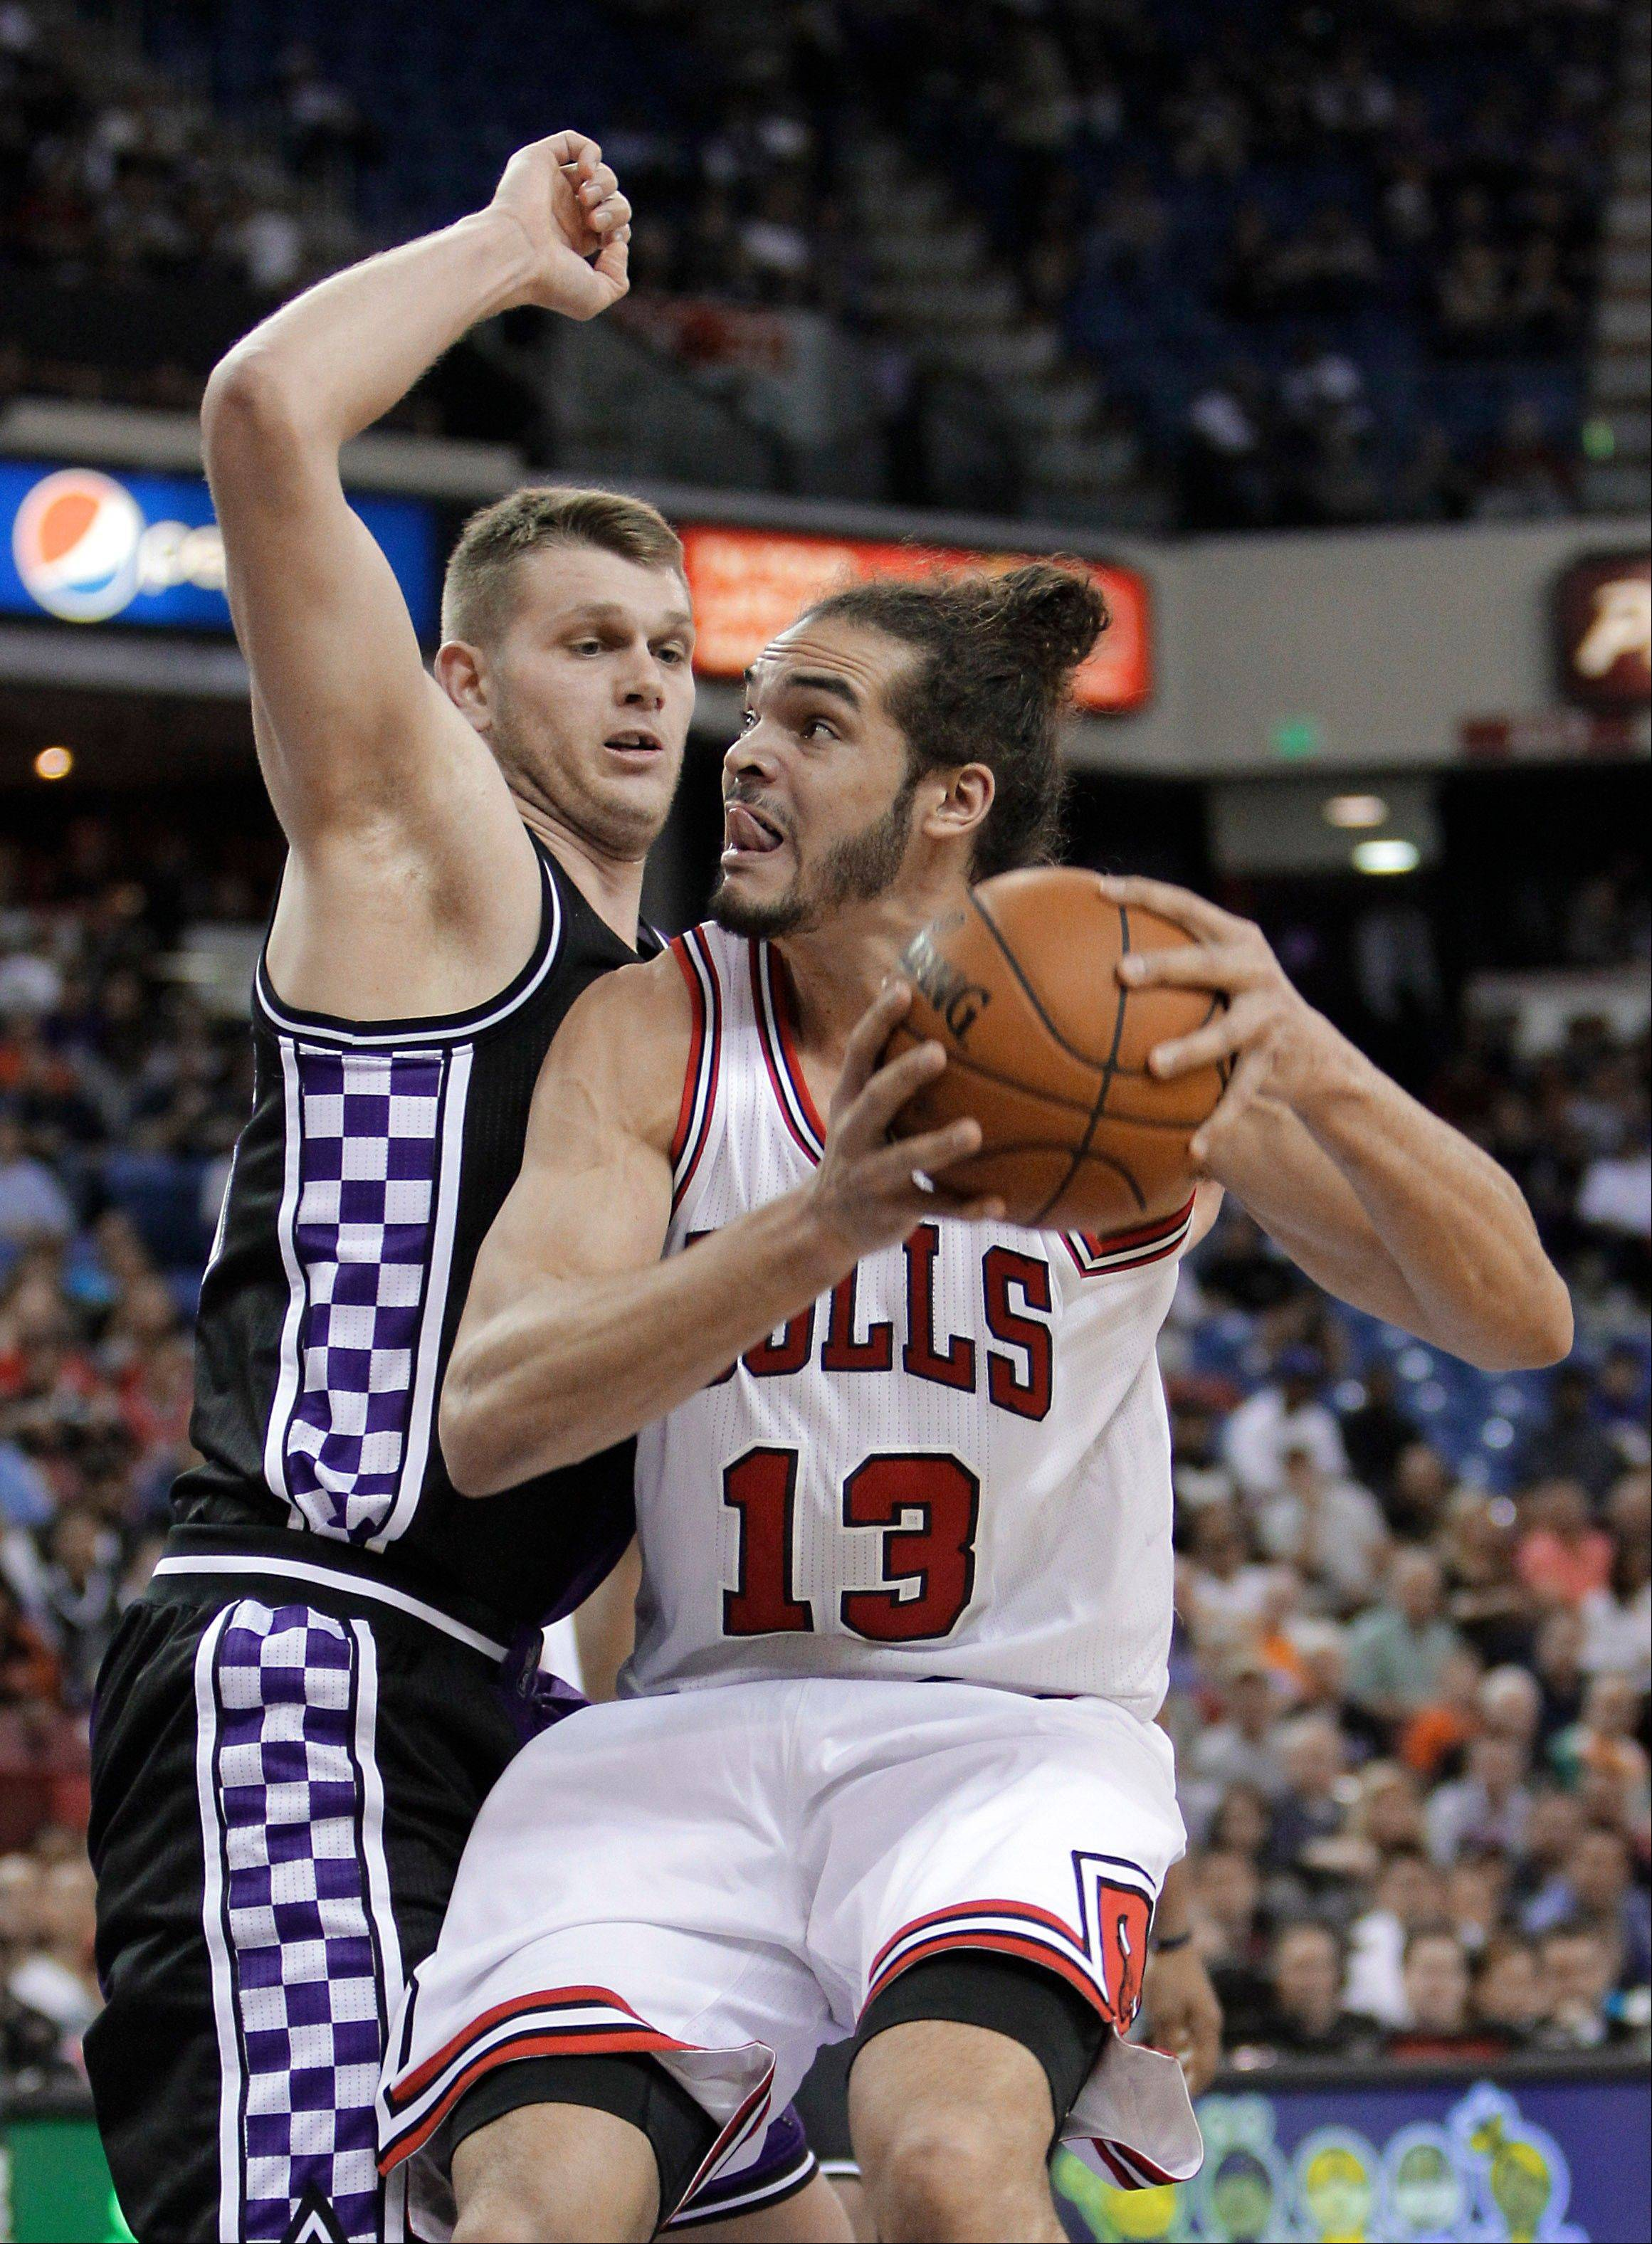 Chicago Bulls center Joakim Noah, right, looks to go to the basket against Kings center Cole Aldrich Wednesday night in Sacramento. The Bulls lost 121-79.